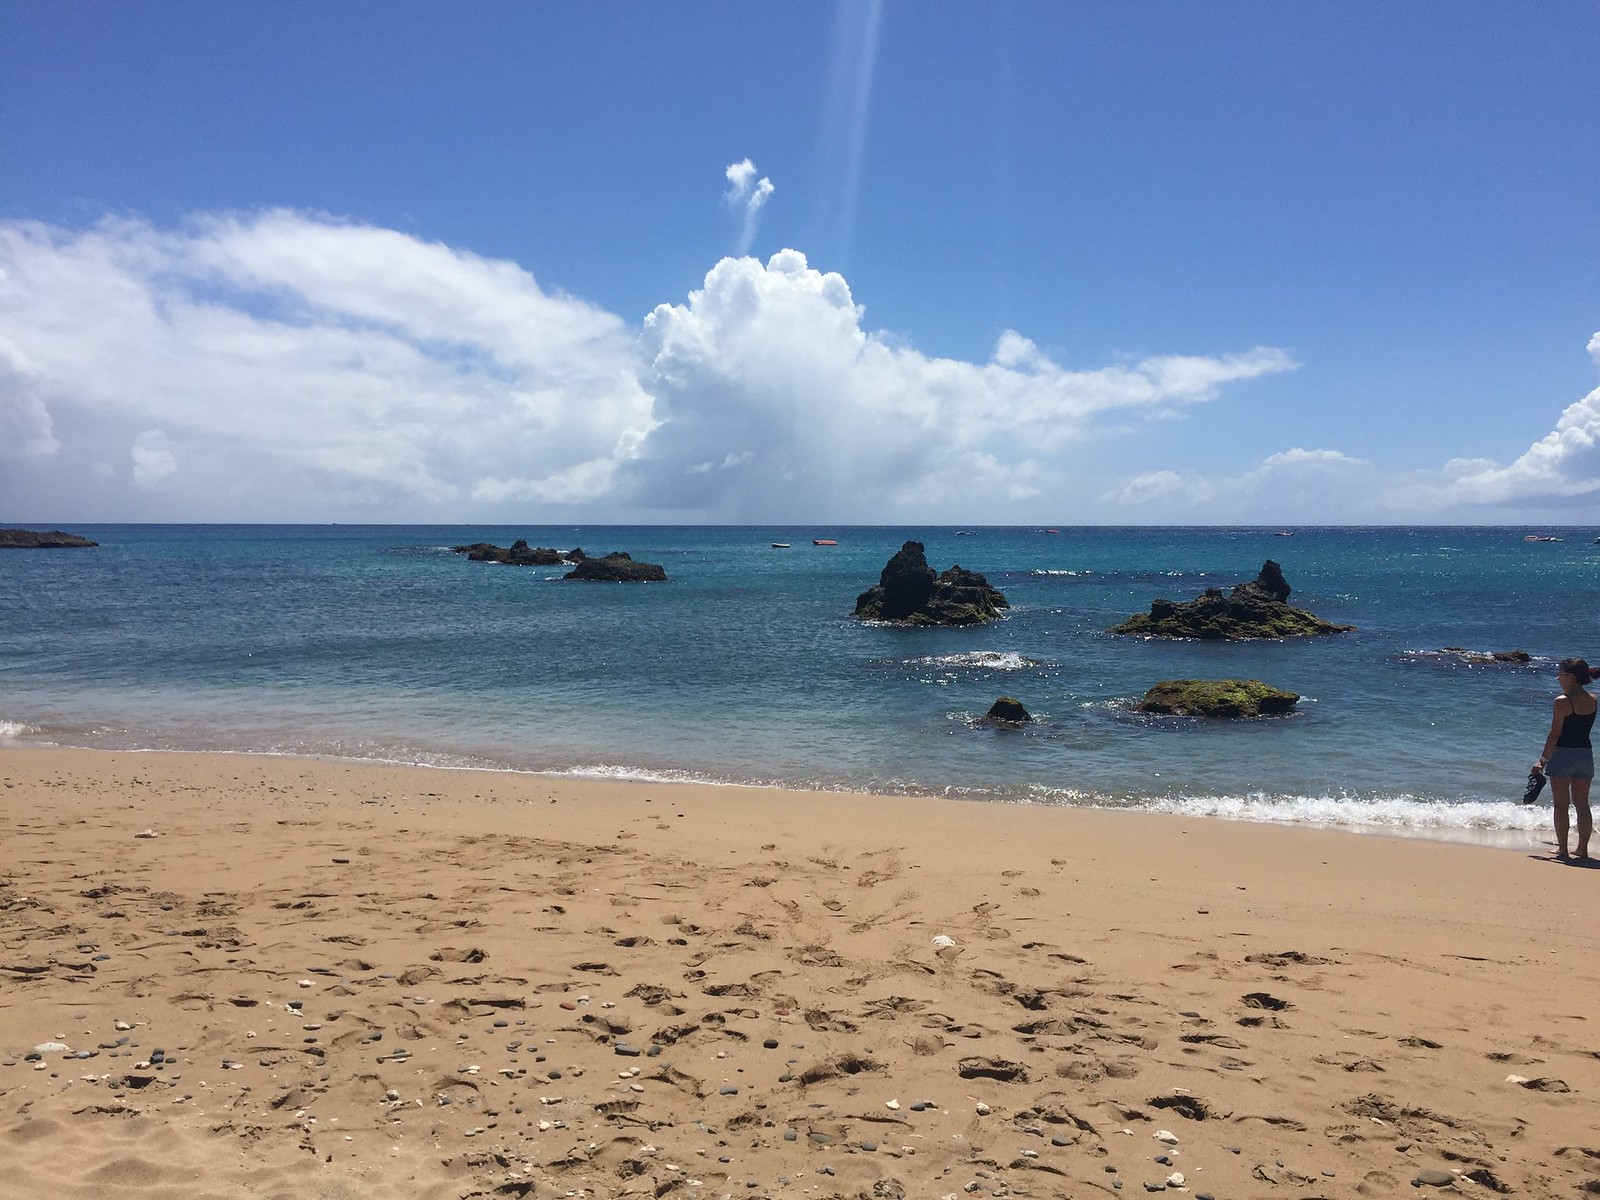 Beach at Kenting